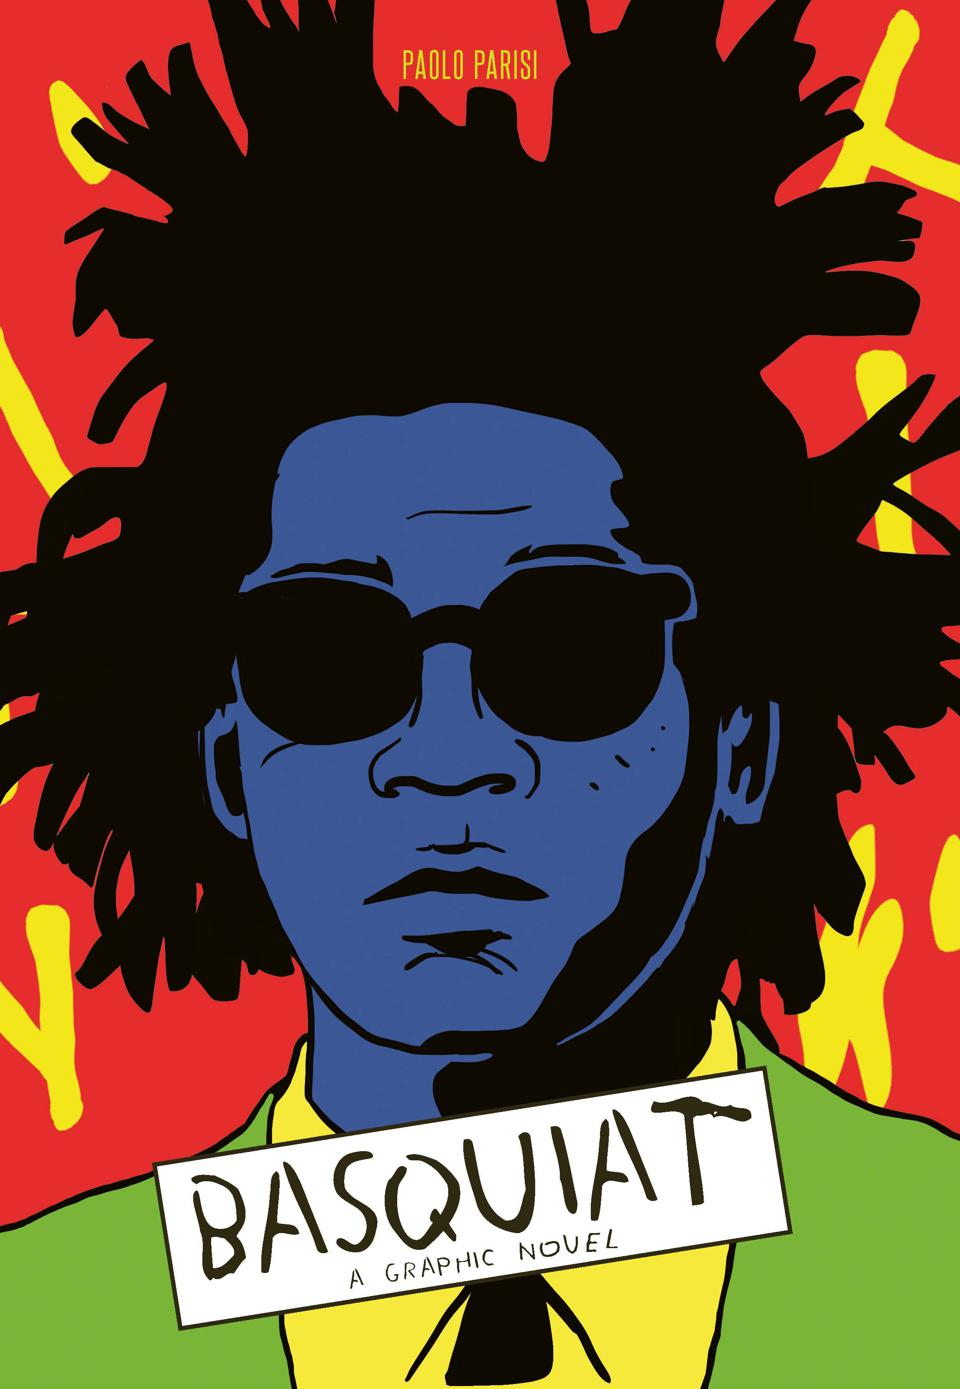 Cover image of Laurence King's BASQUIAT: A Graphic Novel.